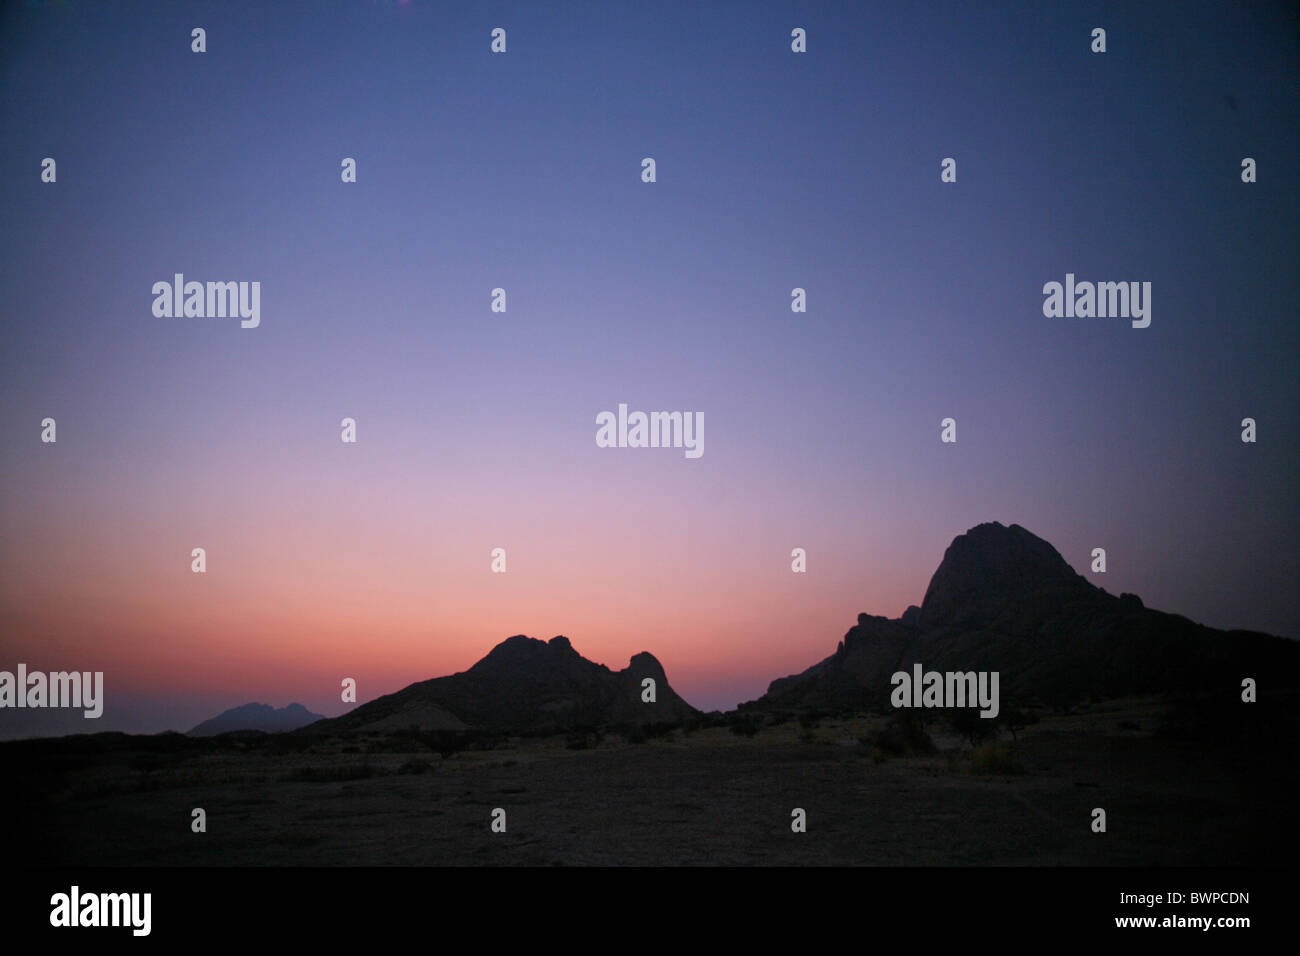 Namibia Africa Mount Spitzkoppe Summer 2007 Africa landscape nature mountain mountains desert sky twilight - Stock Image